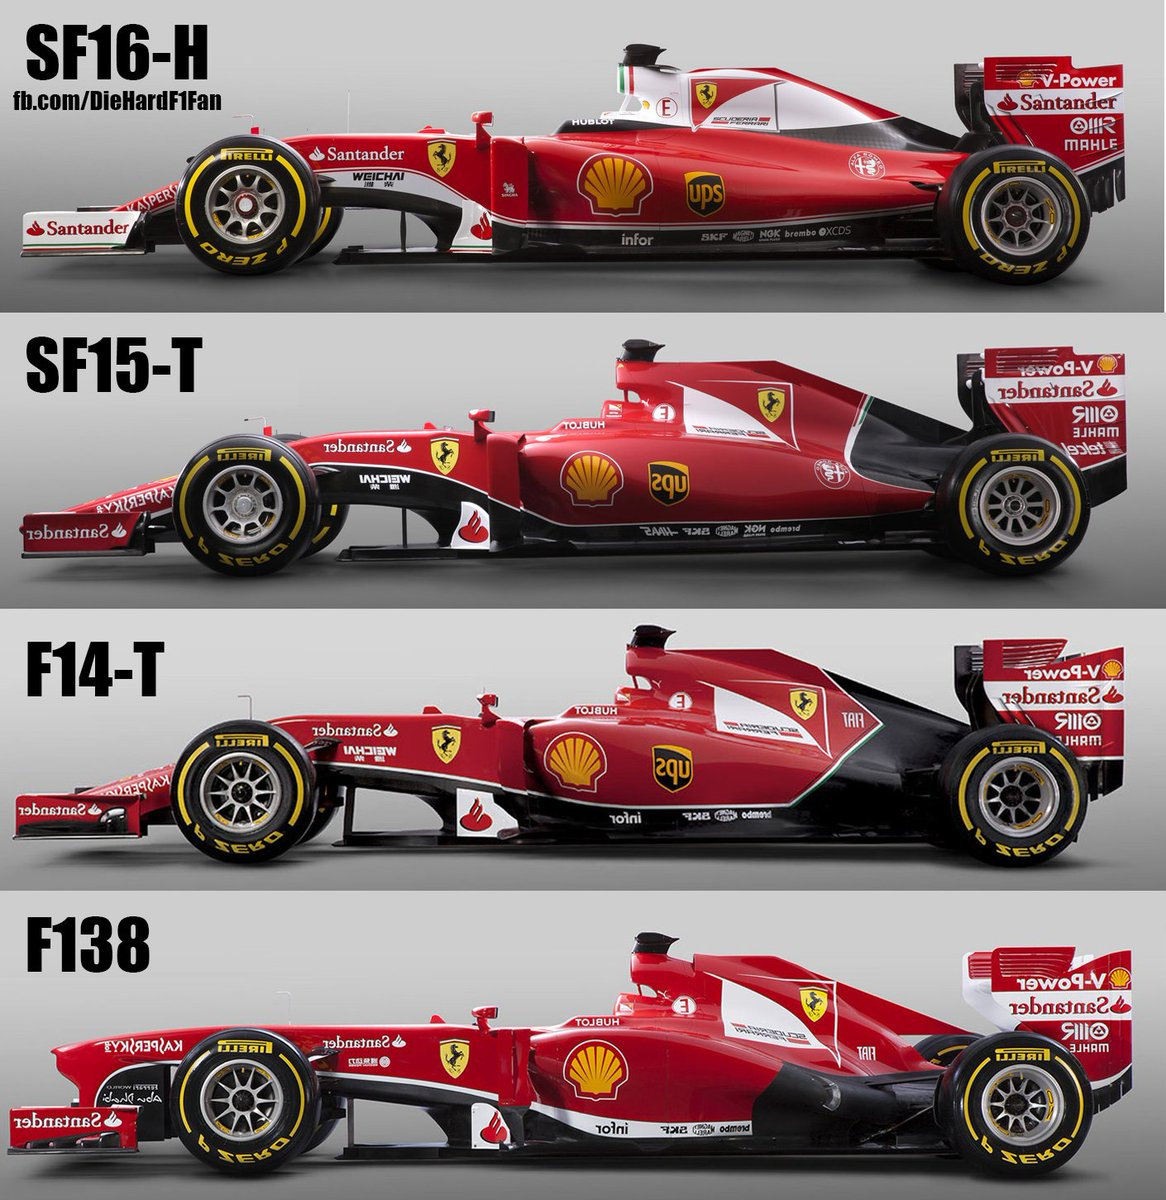 #F1 Side, Front and Top View Comparison : @ScuderiaFerrari SF16-H v/s SF15-T v/s F14-T v/s F138 https://t.co/46BDc54QeH